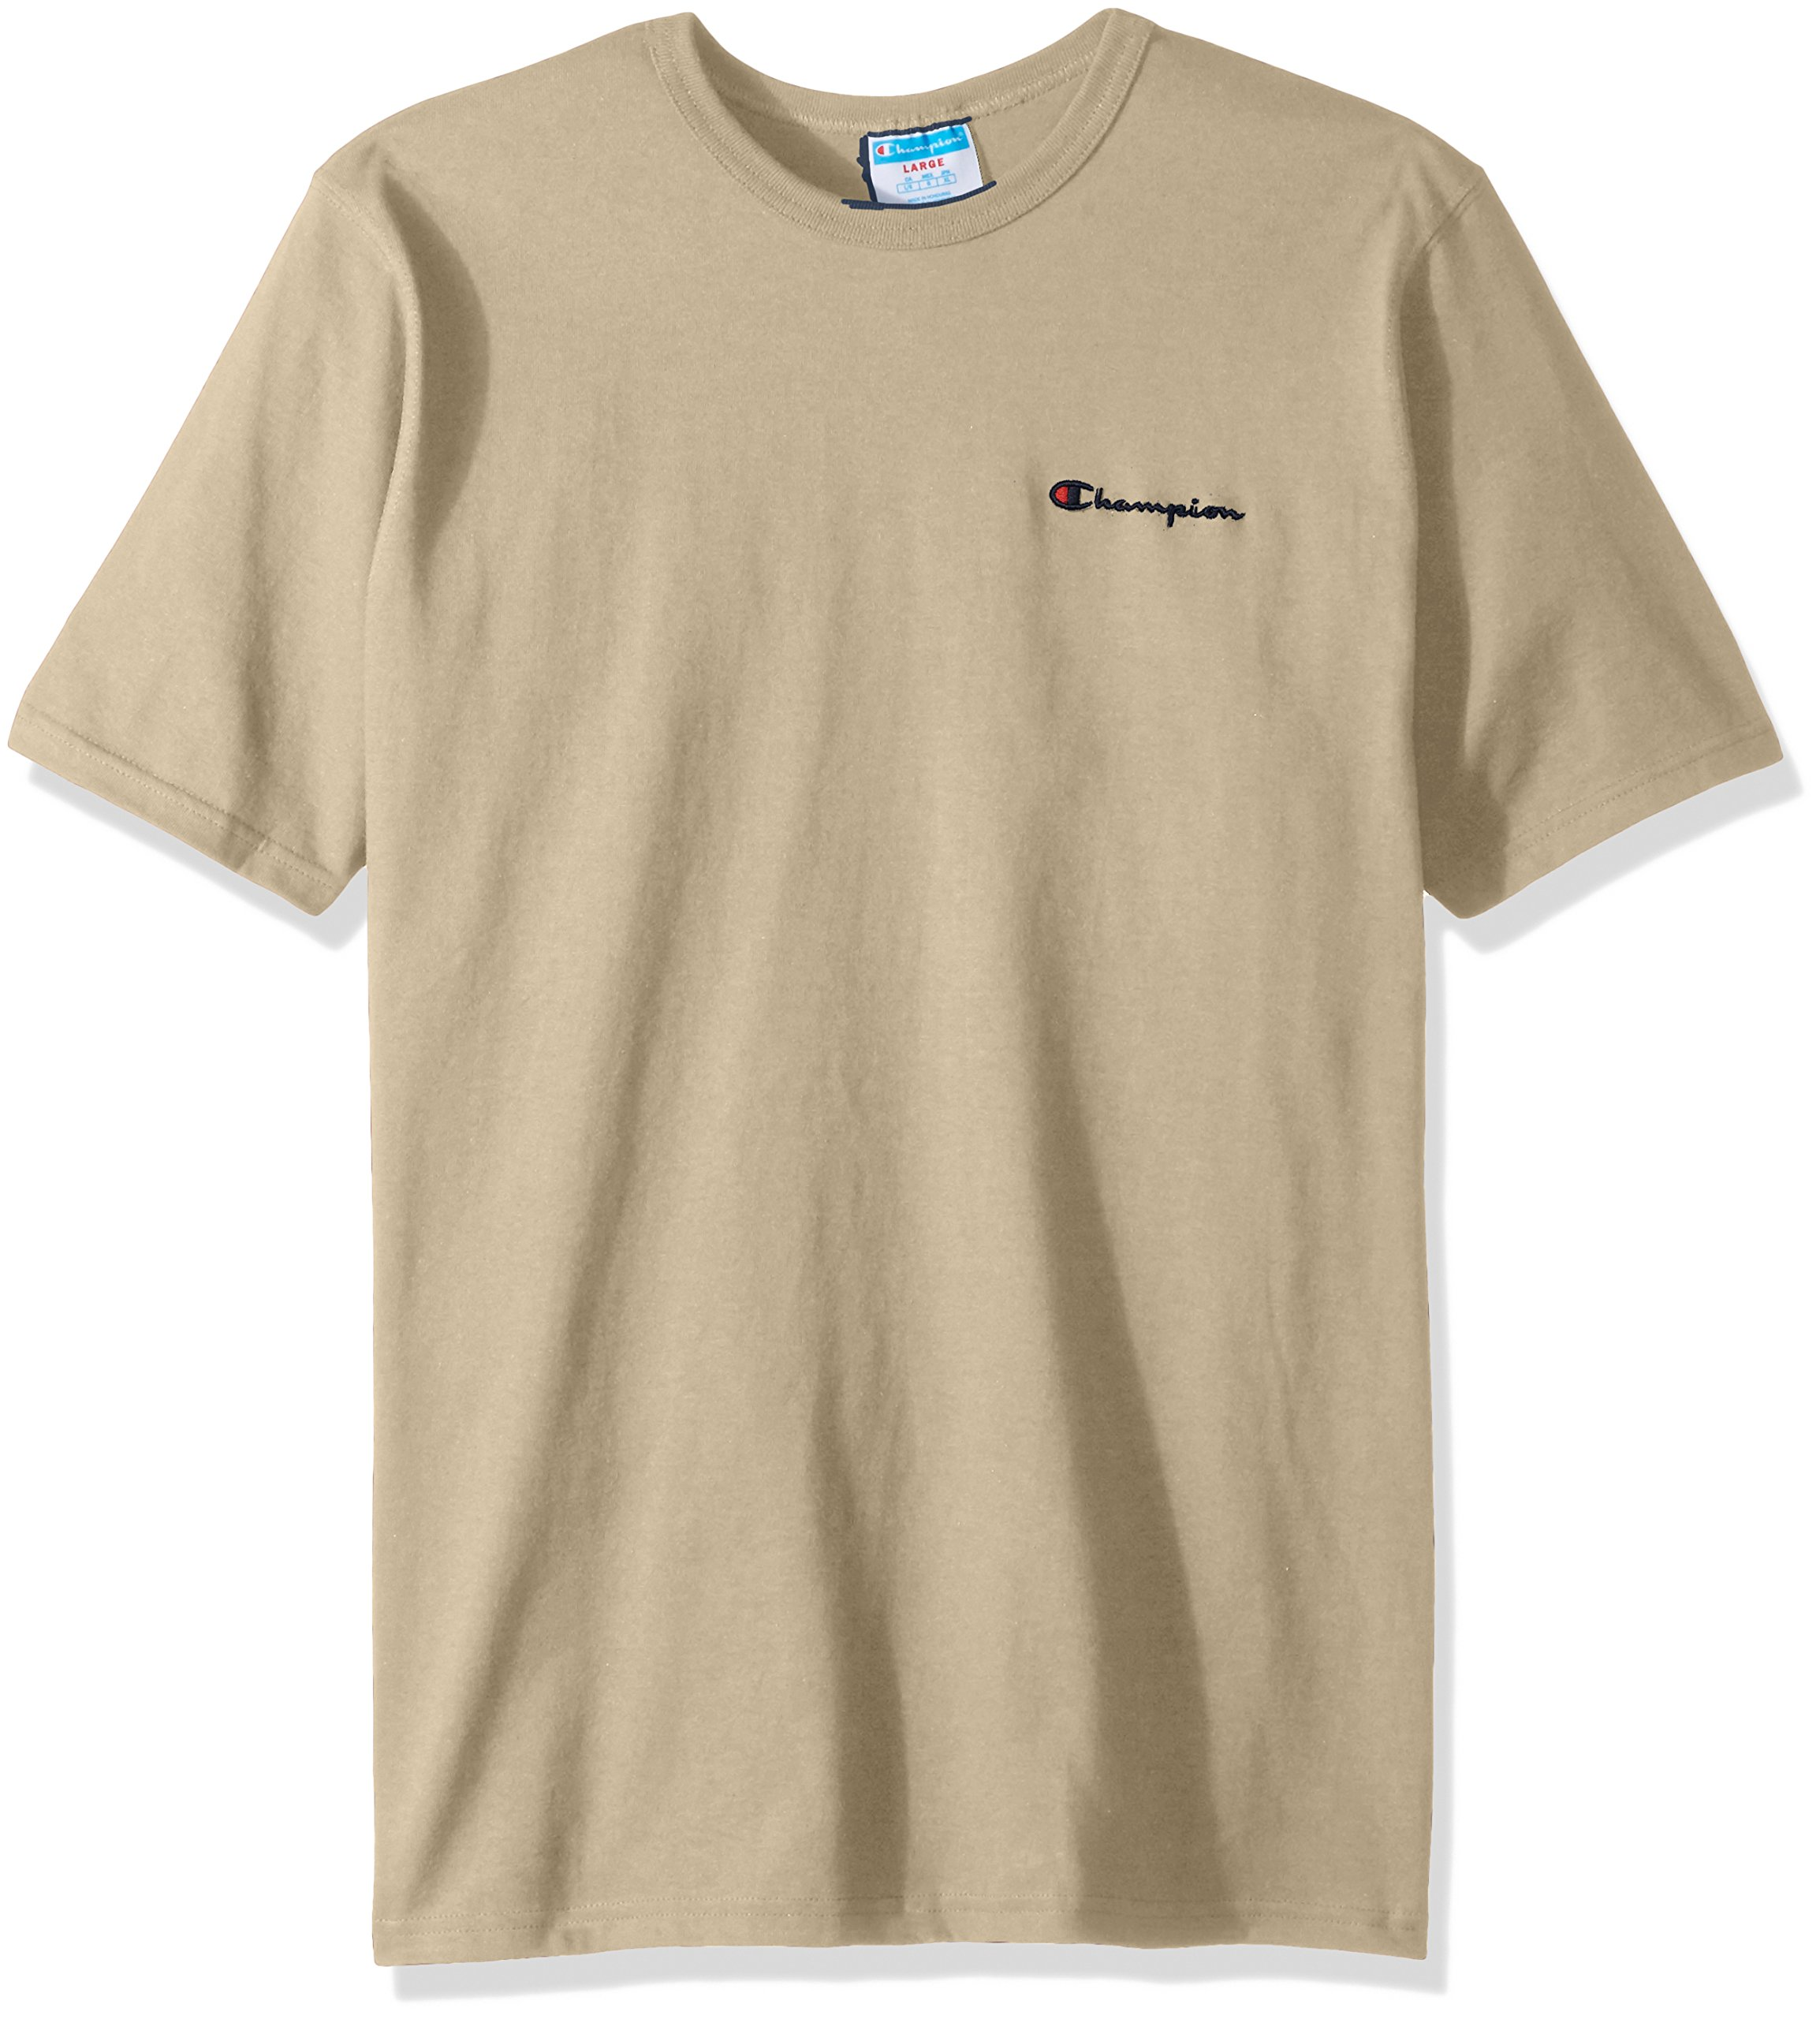 1e480d180 Galleon - Champion LIFE Men's Heritage Tee, Khaki/Left Chest Champion  Script, Large